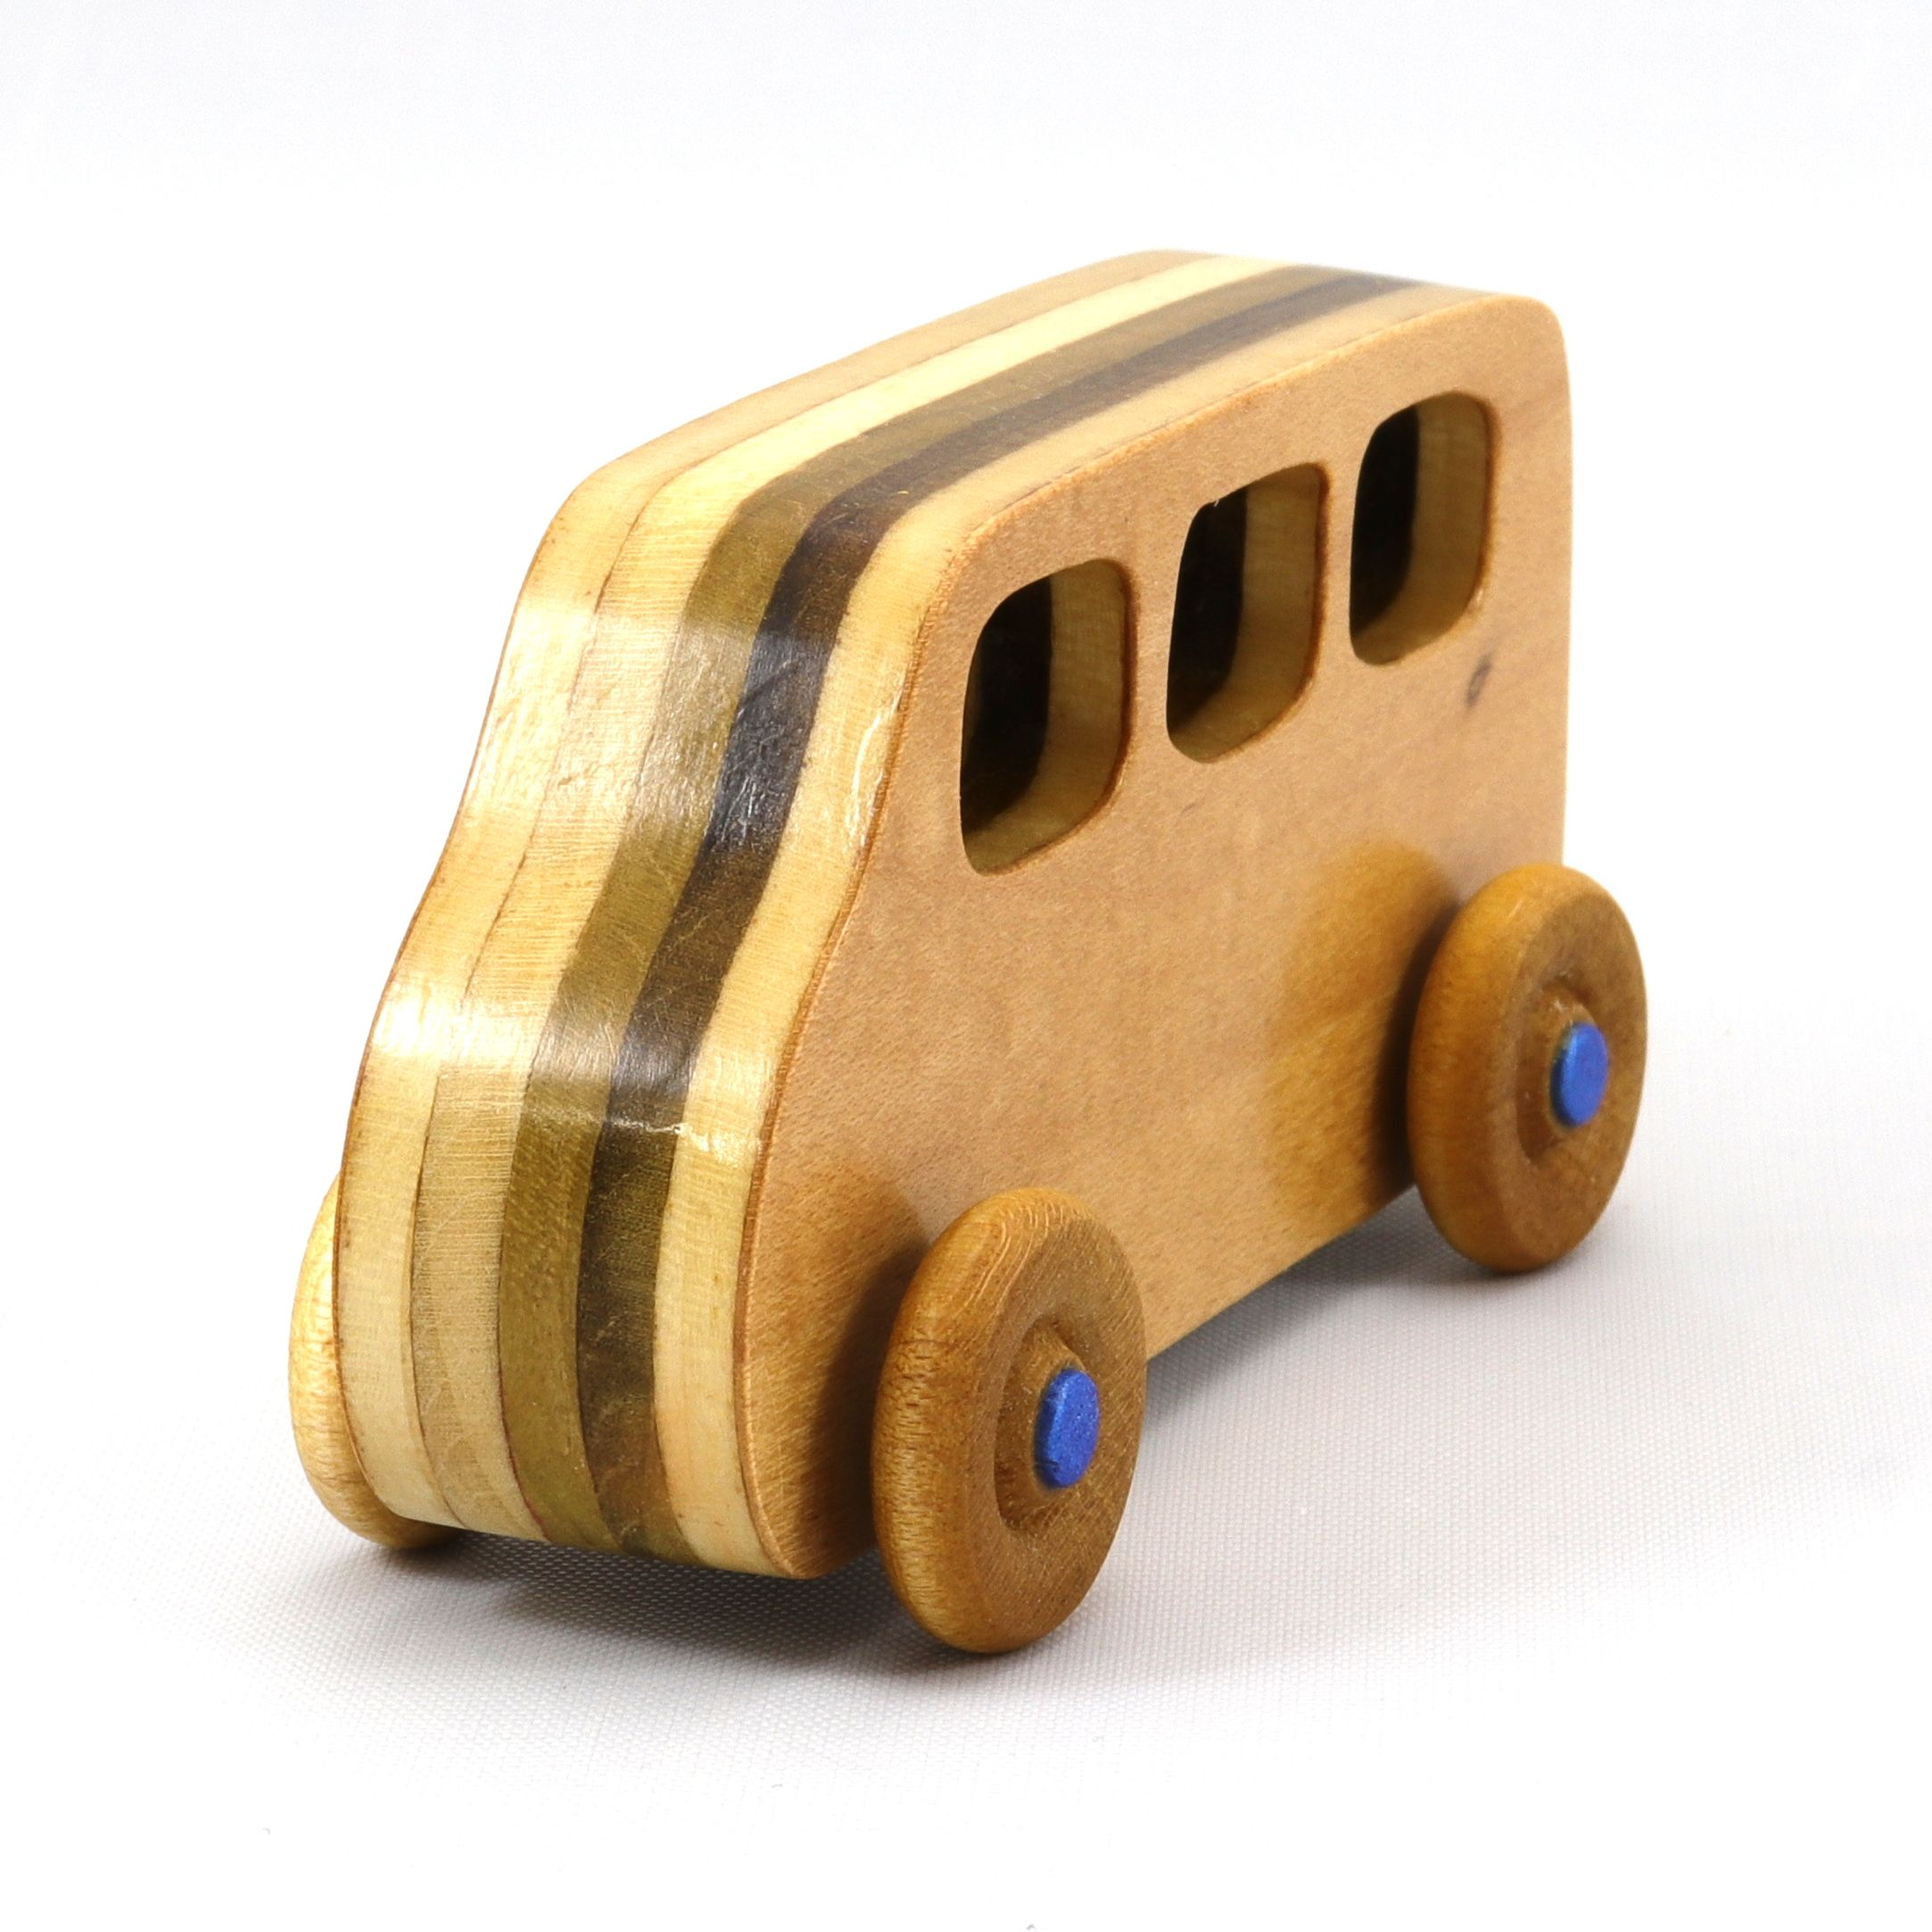 Handmade Wooden Toy Car Mini Van Bus Finished With Nontoxic Amber Shellac From The Play Pal Series In 2021 Handmade Wooden Toys Wooden Toys Wooden